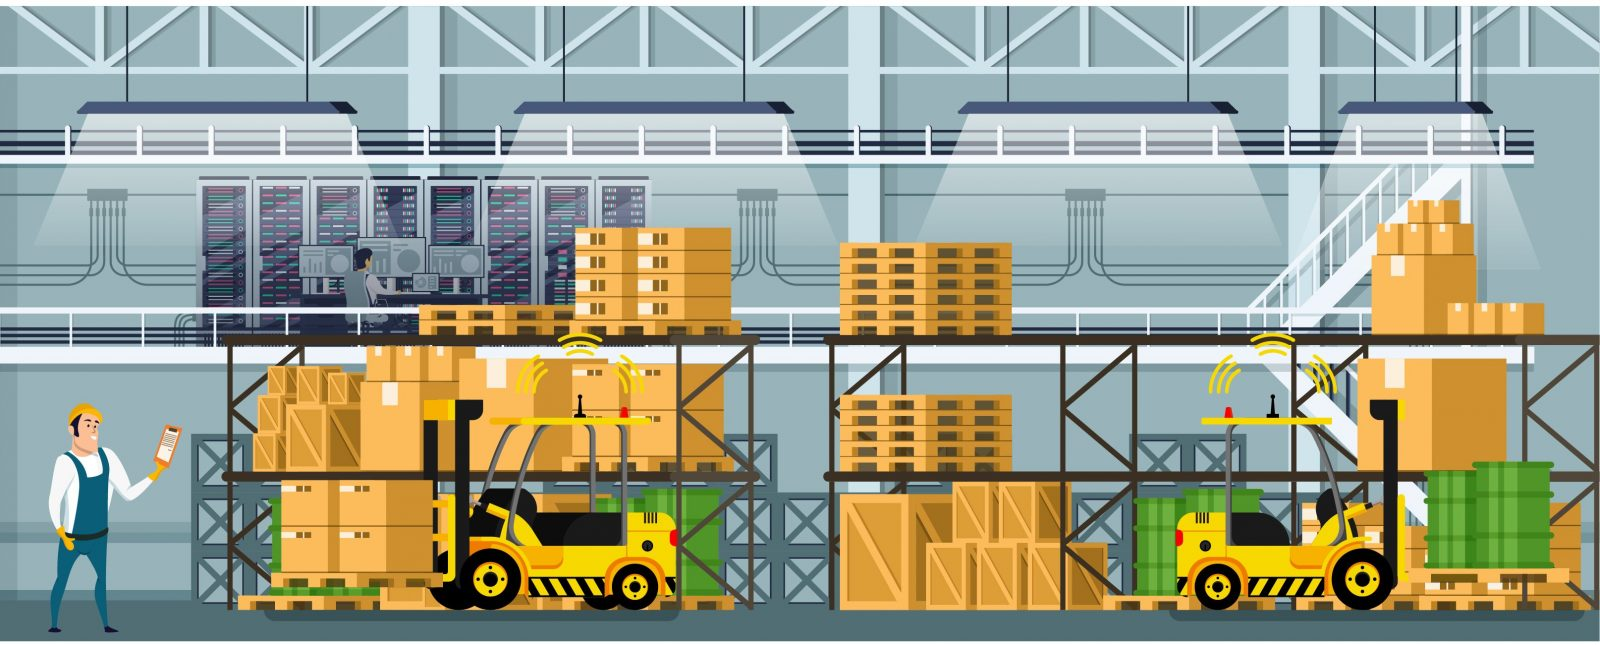 Explore how inventory and asset tracking with RFID improves manufacturing process.